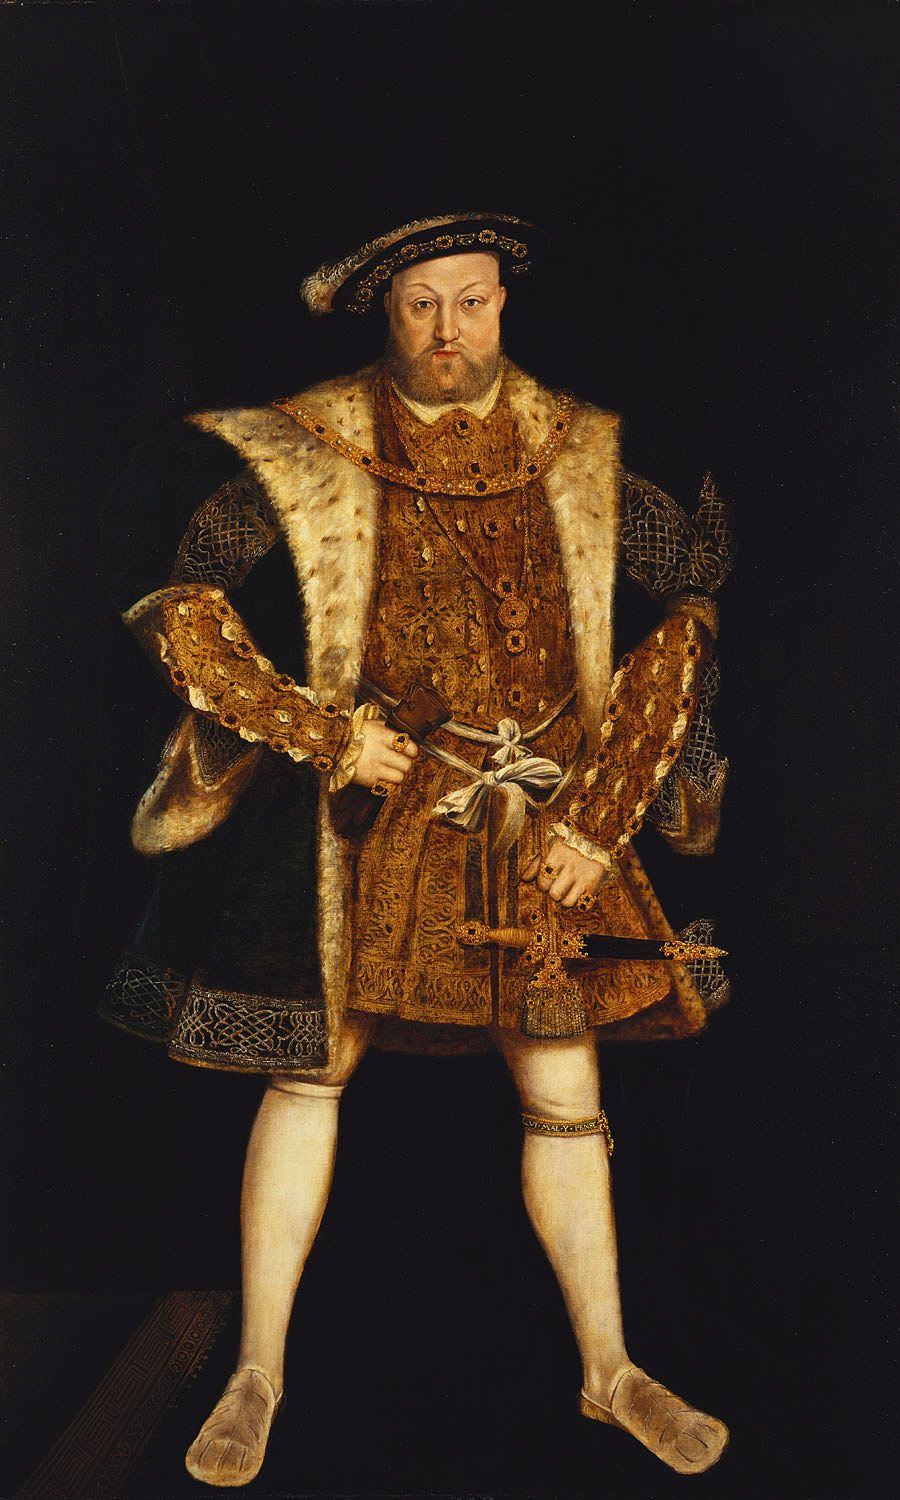 Portrait of Henry VIII. c.1550-99. After Hans Holbein the Younger